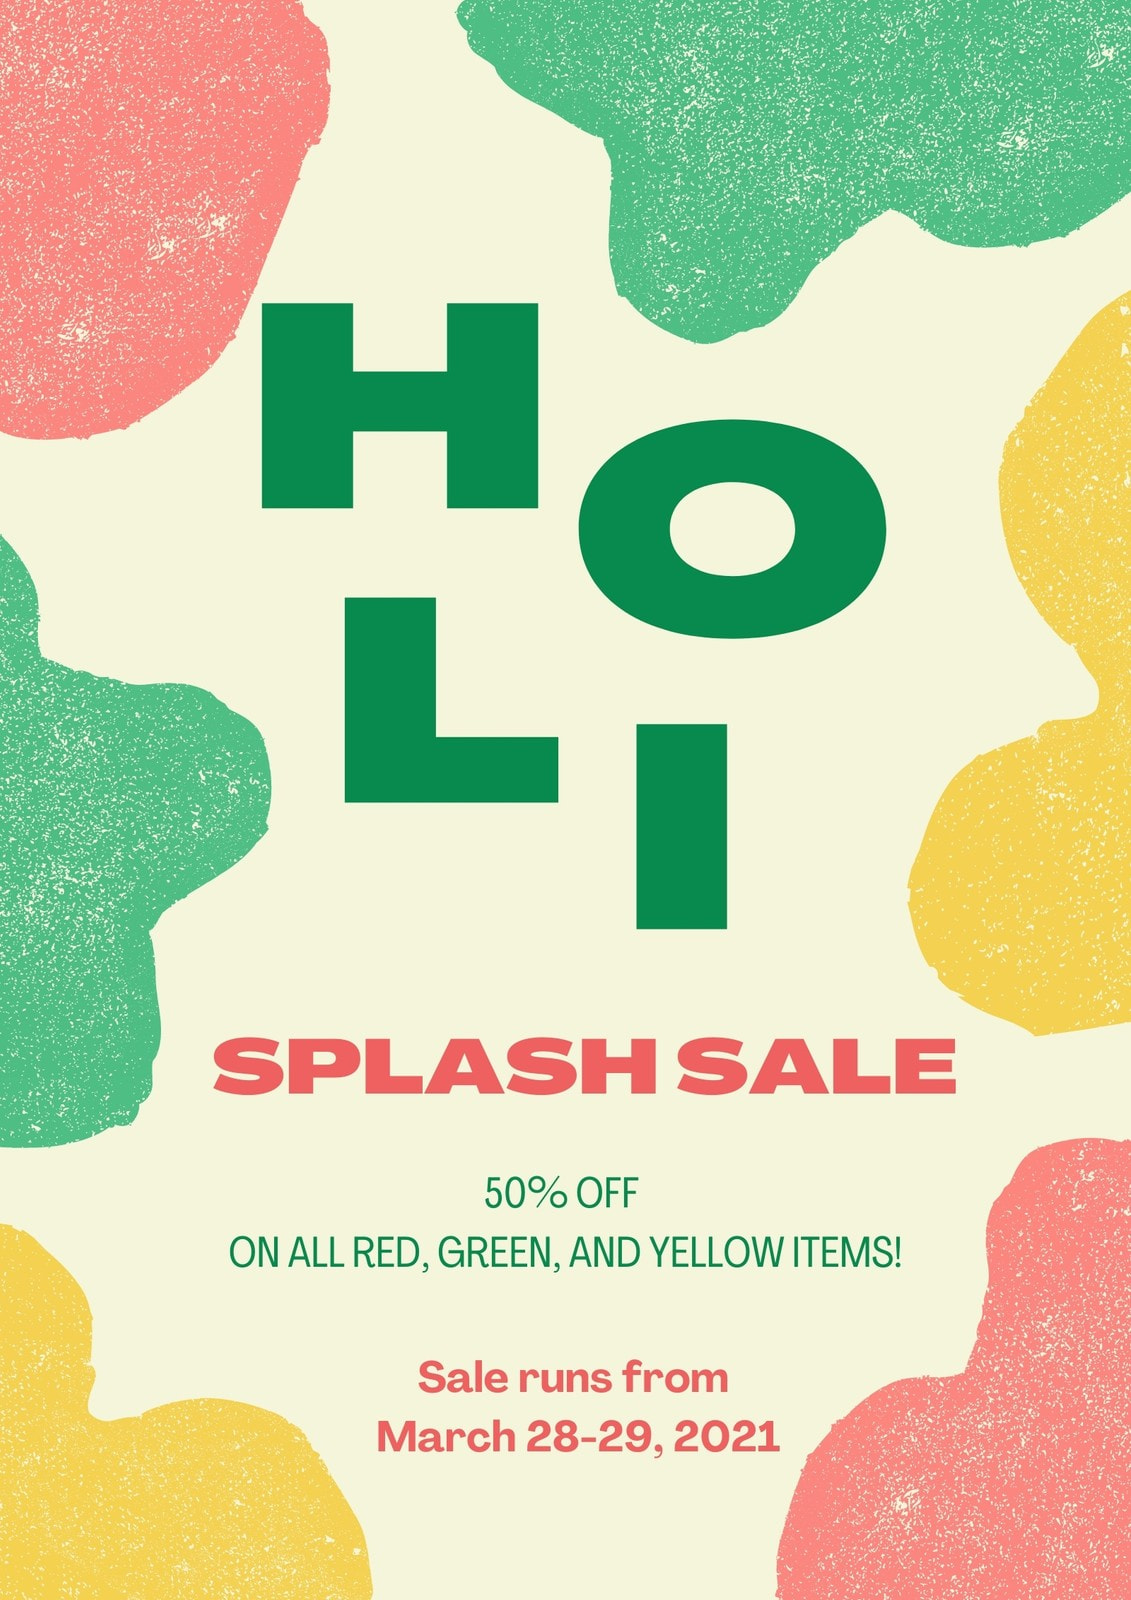 Green Yellow and Pink Freestyle Art Holi Festival Sale Business Poster